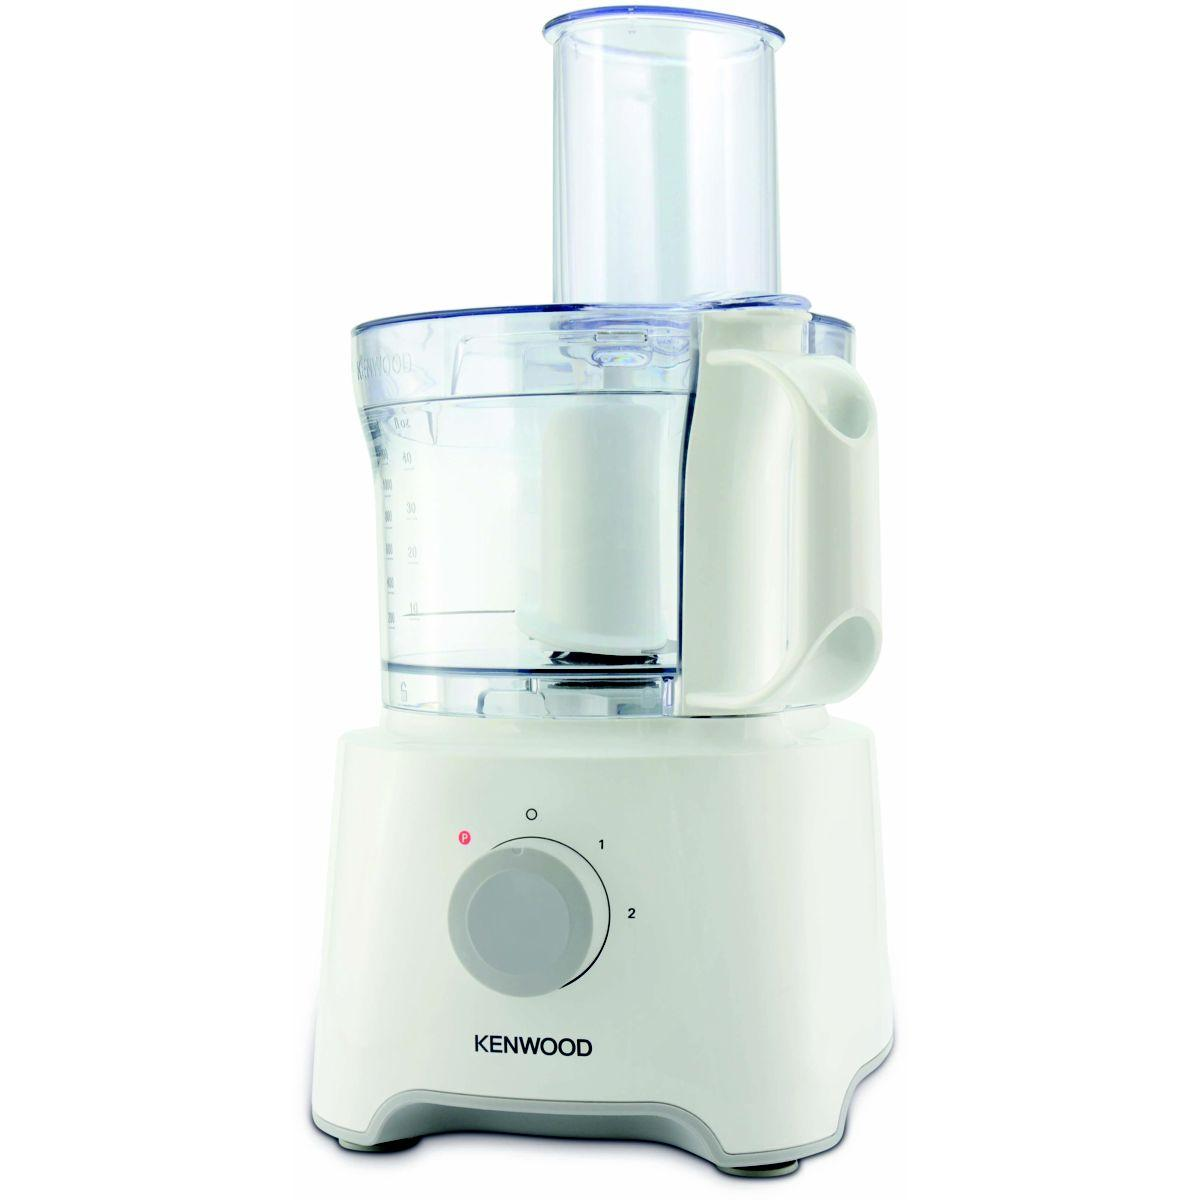 Robot kenwood multipro compact true fdp3 - 10% de remise immédiate avec le code : anniv10 (photo)